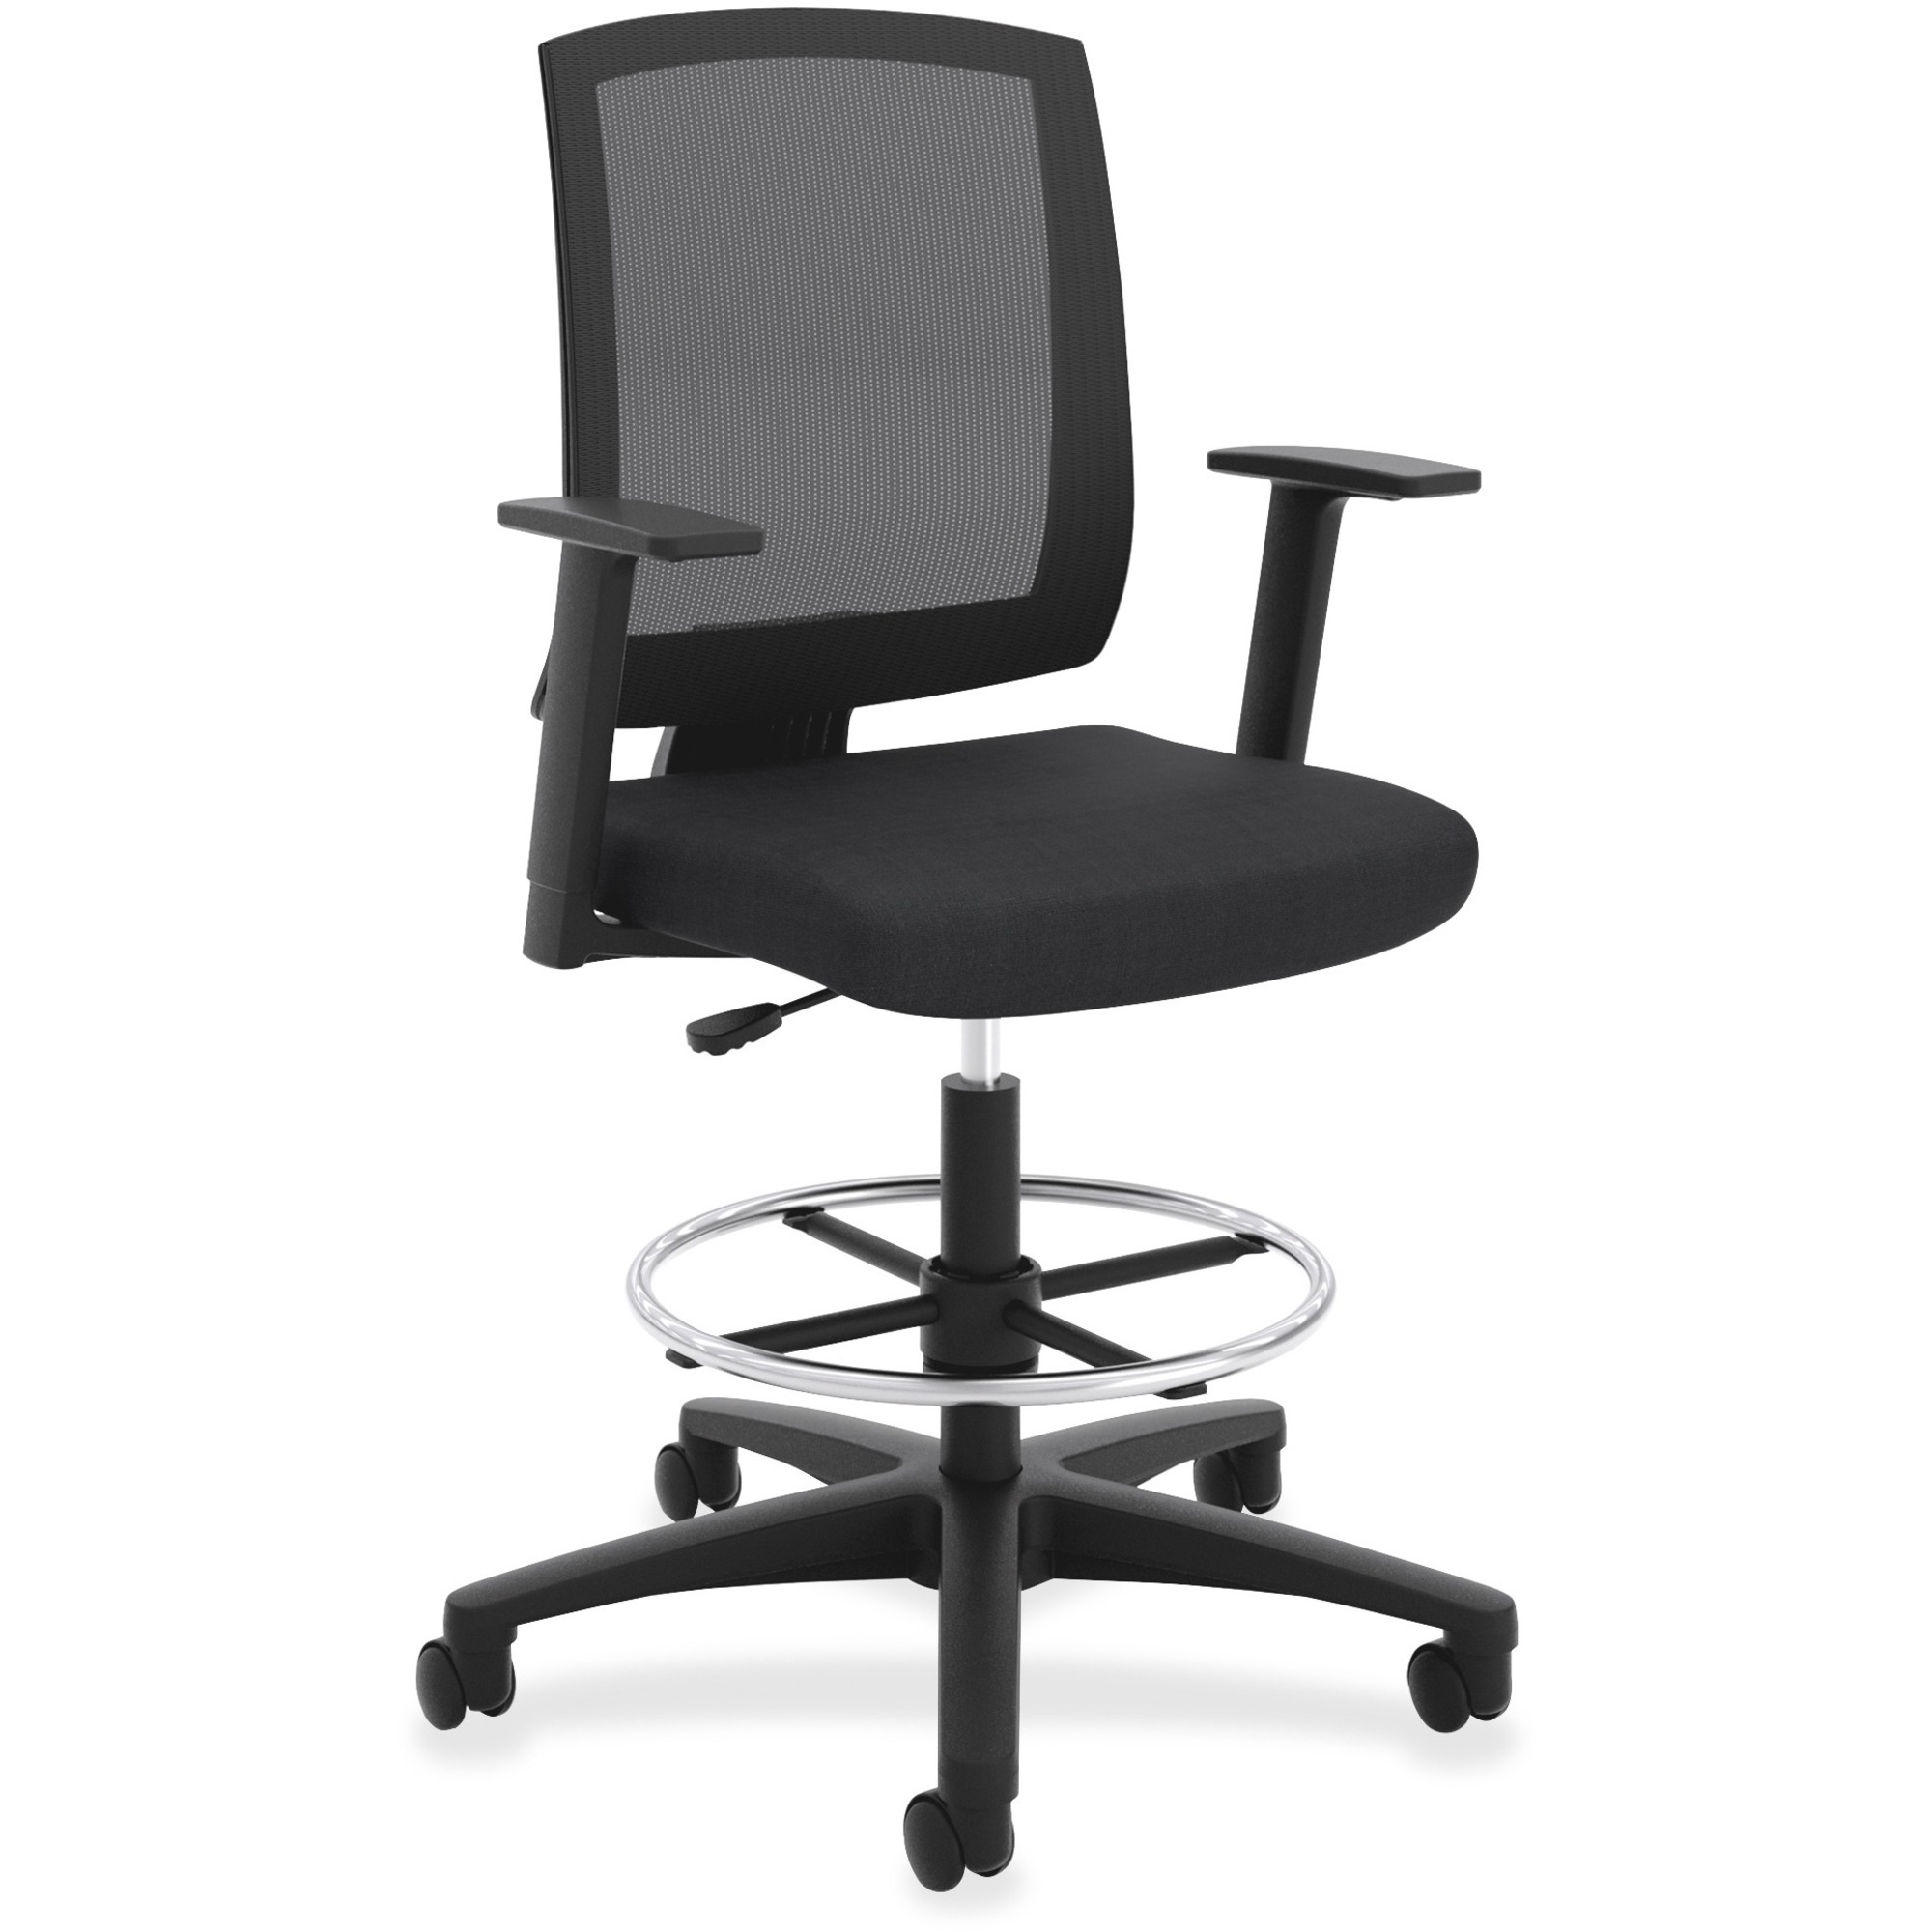 Product BSXVL515LH10 basyx by HON HVL515 Mesh Mid Back Task Stool